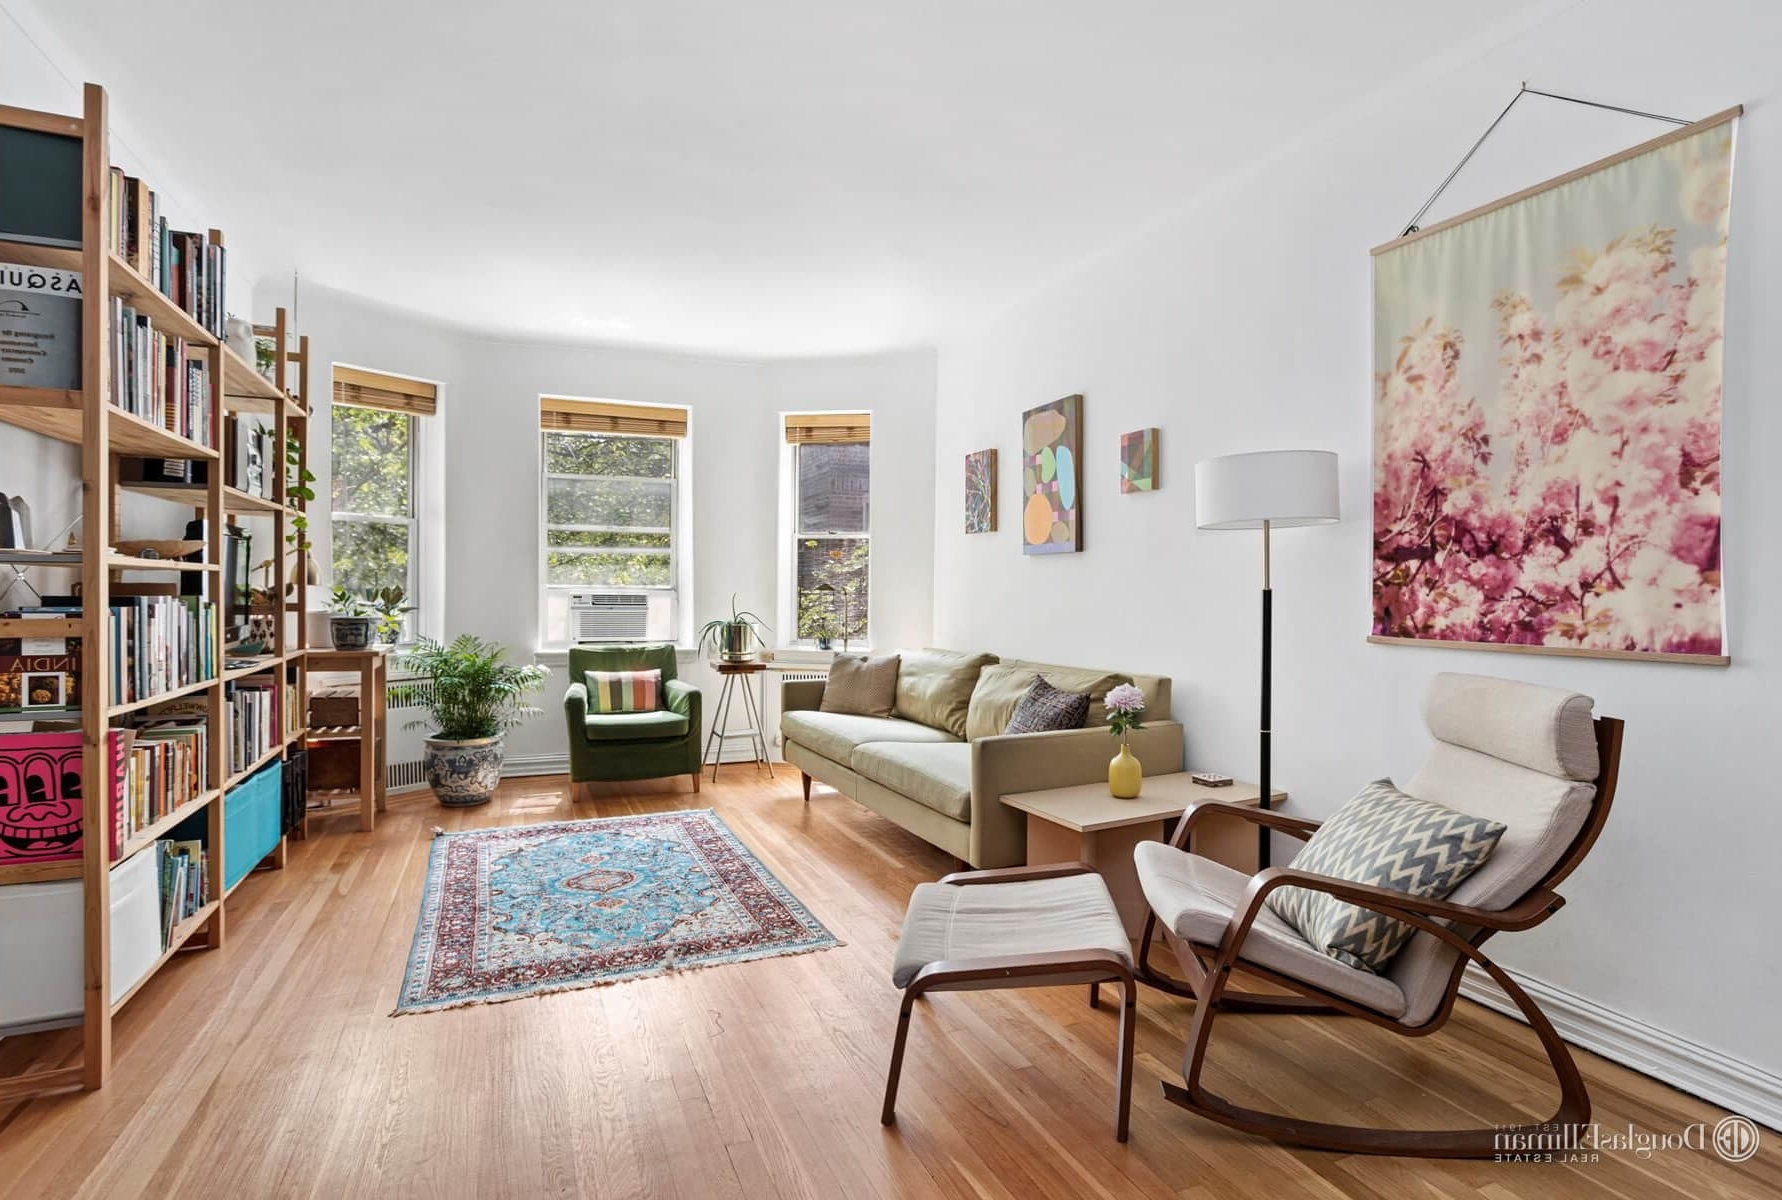 Spacious Midwood Prewar With Sunken Living Room, Five Sunken Living Room